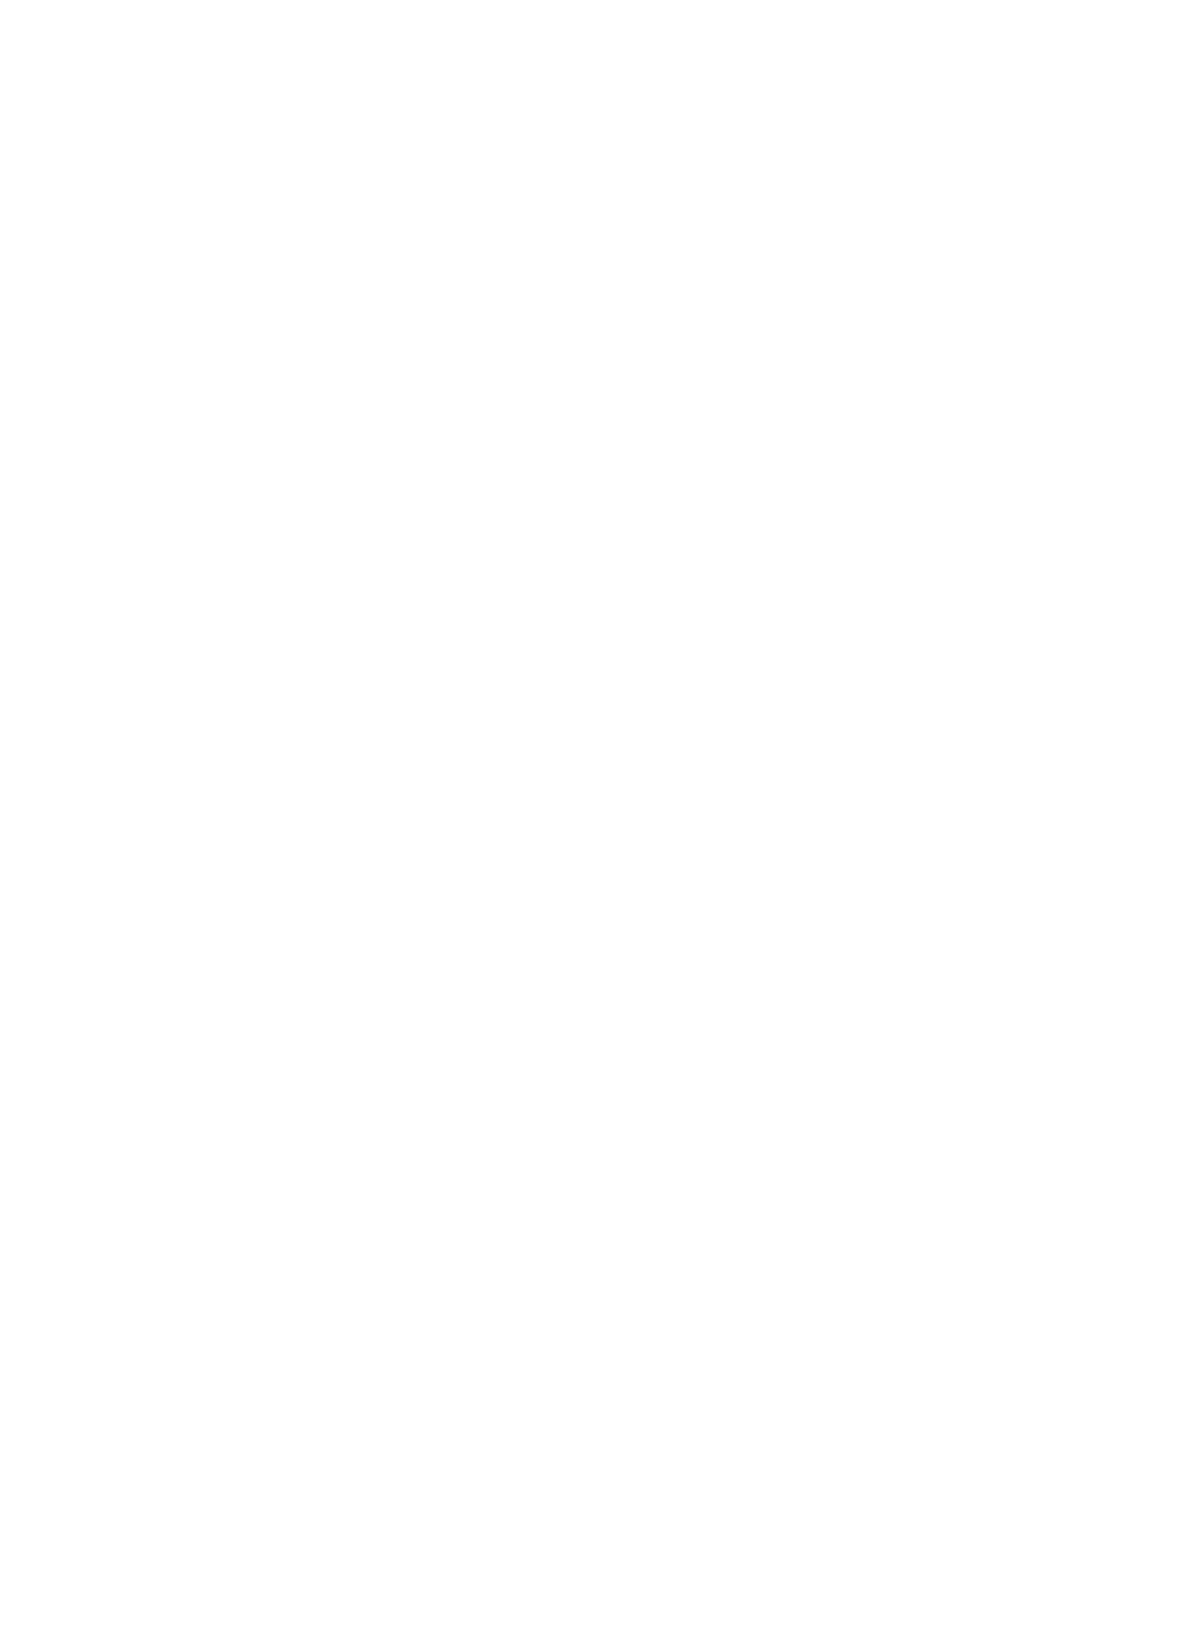 Download Jb Khanna PNG Image with No Background - PNGkey com